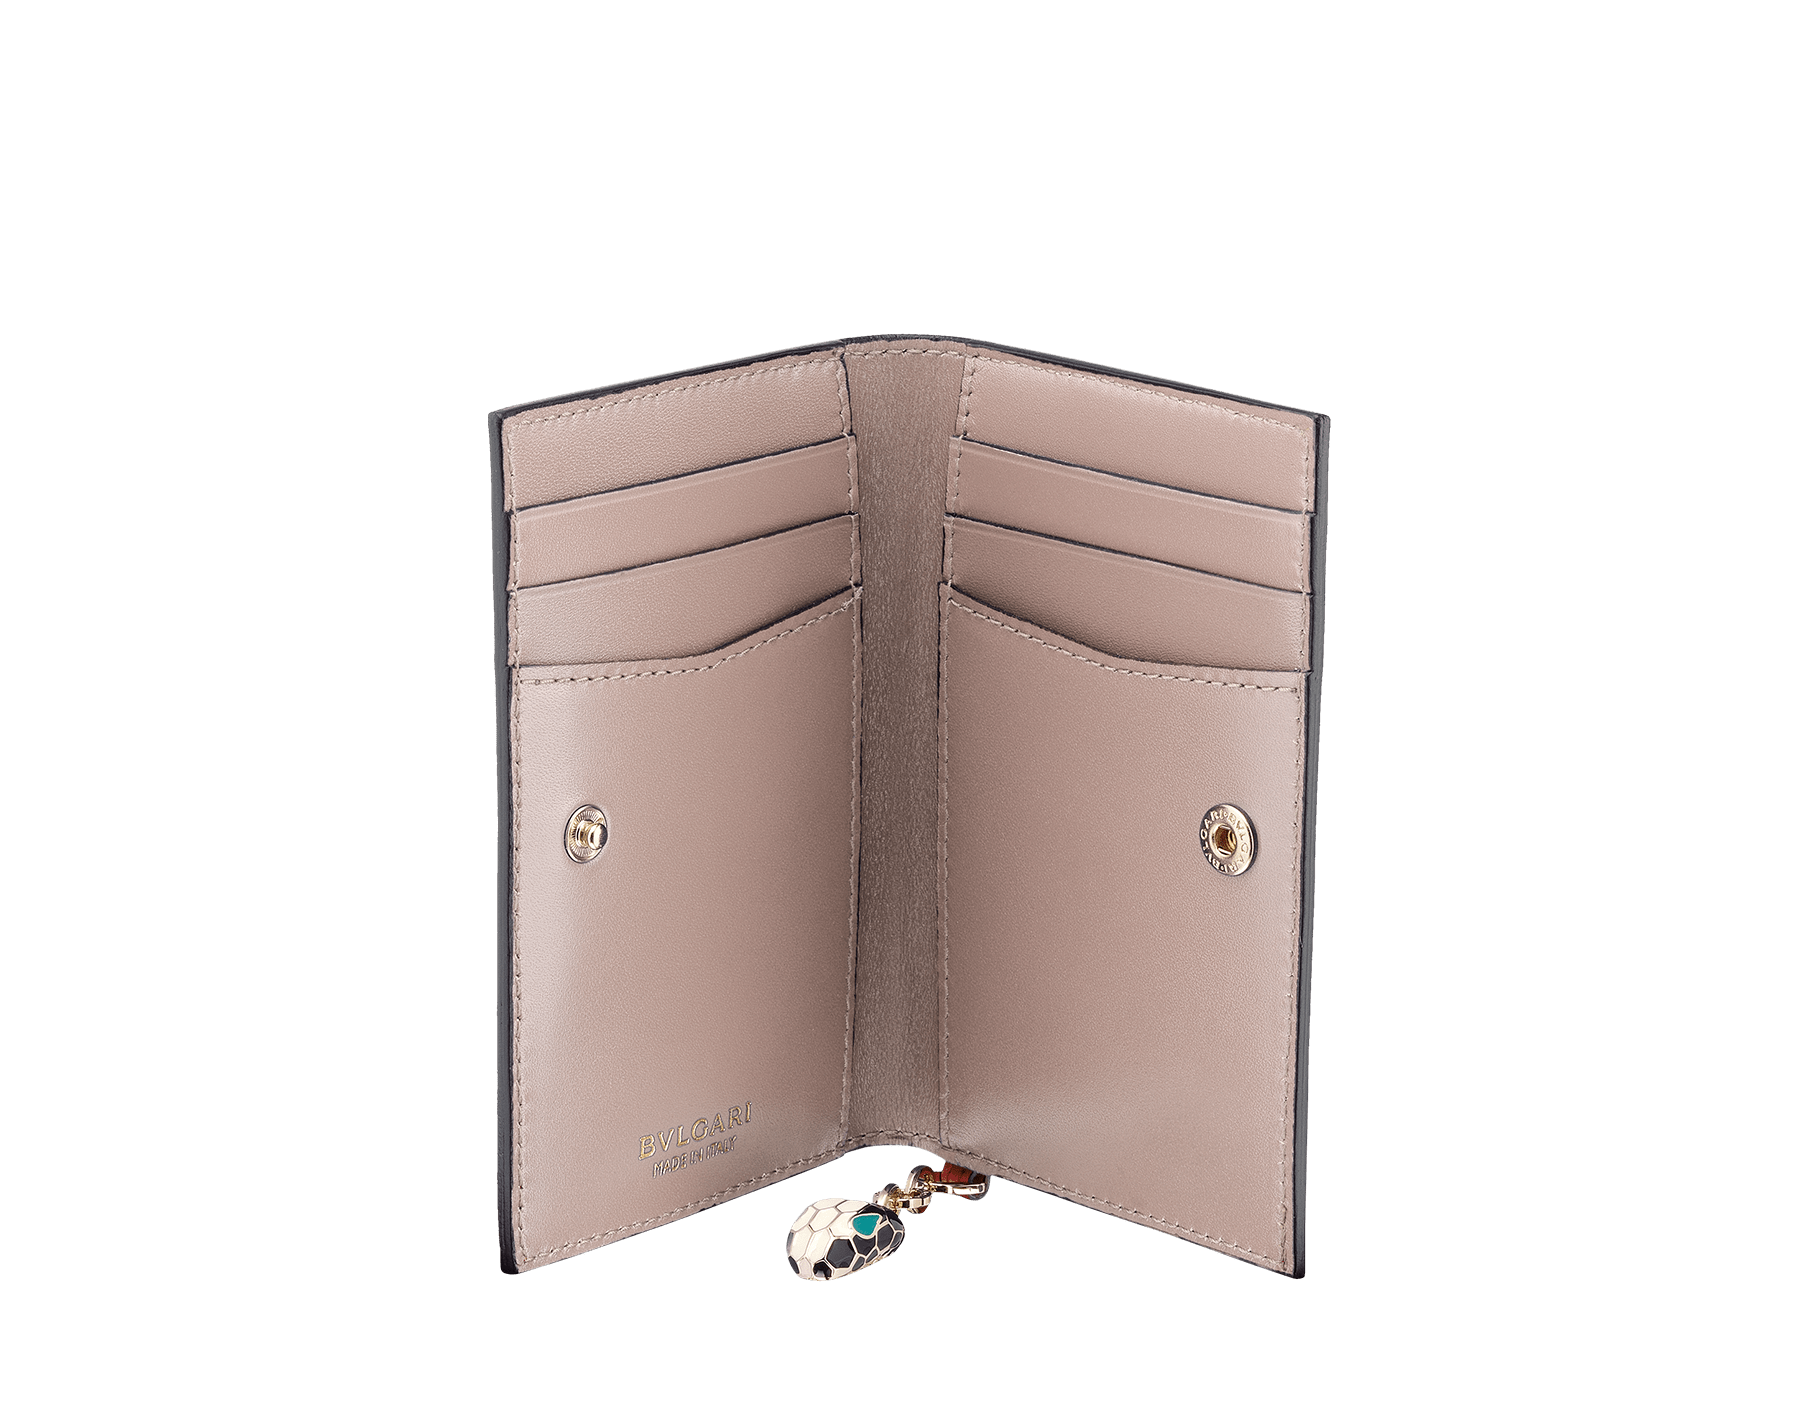 Serpenti Forever folded credit card holder in crystal rose calf leather. Iconic snakehead charm in black and white enamel, with green malachite enamel eyes. SEA-CC-HOLDER-FOLD-CLb image 2